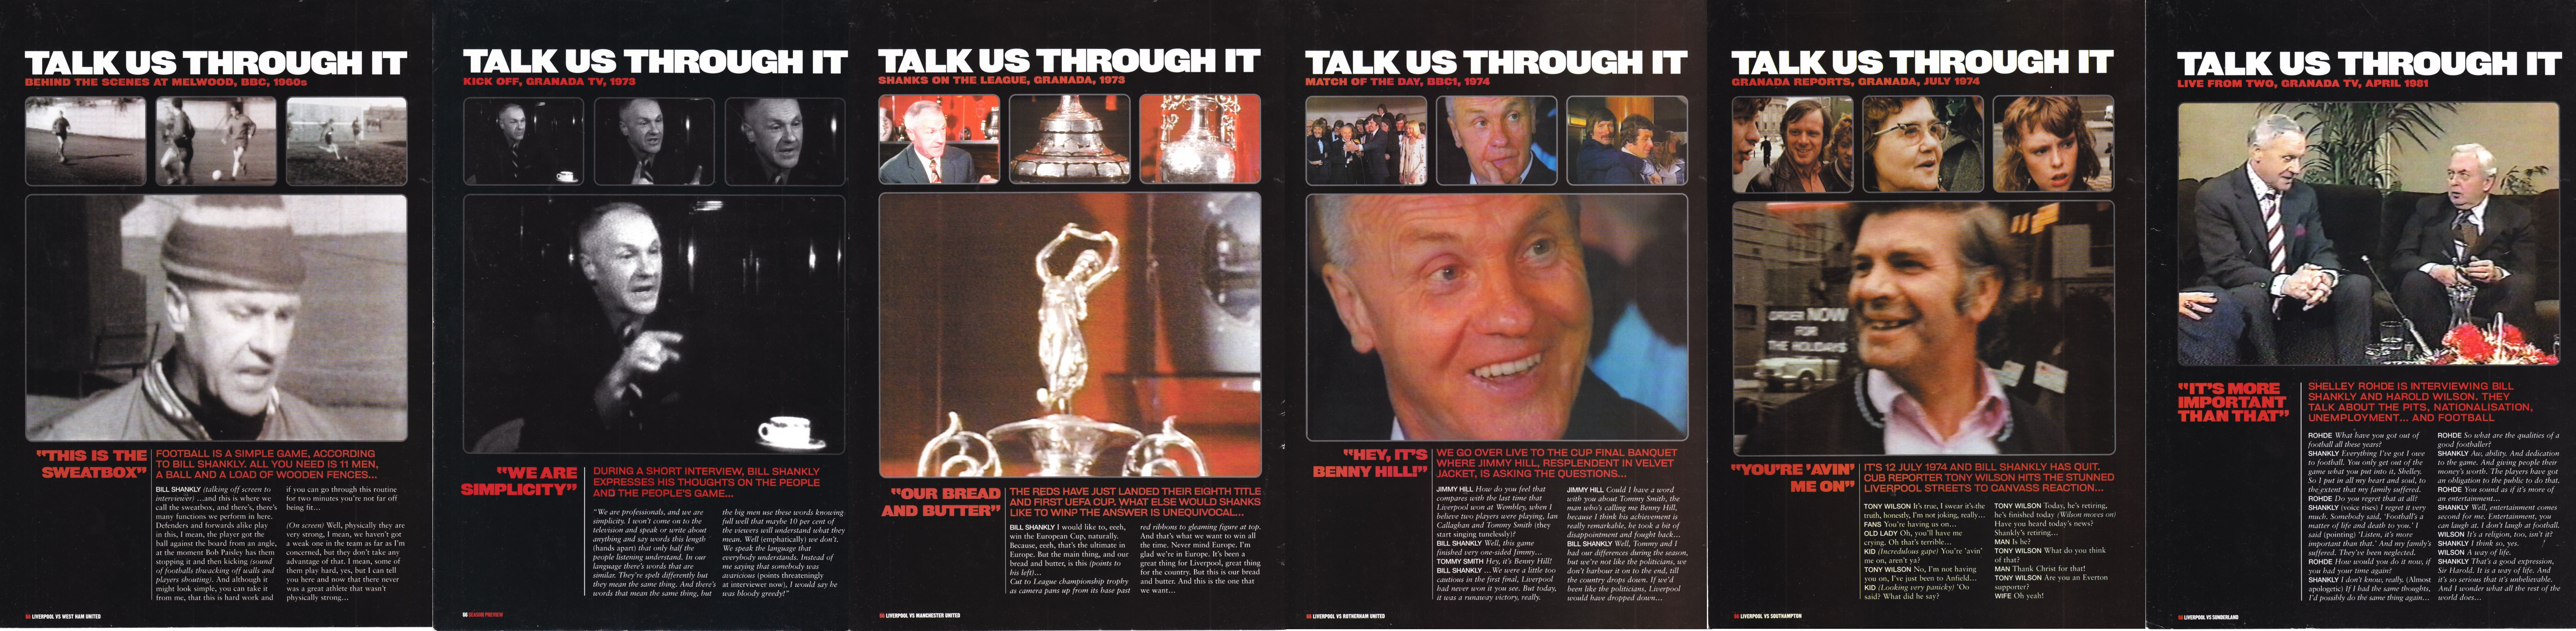 Talk us through it - LFC Official Matchday Magazine